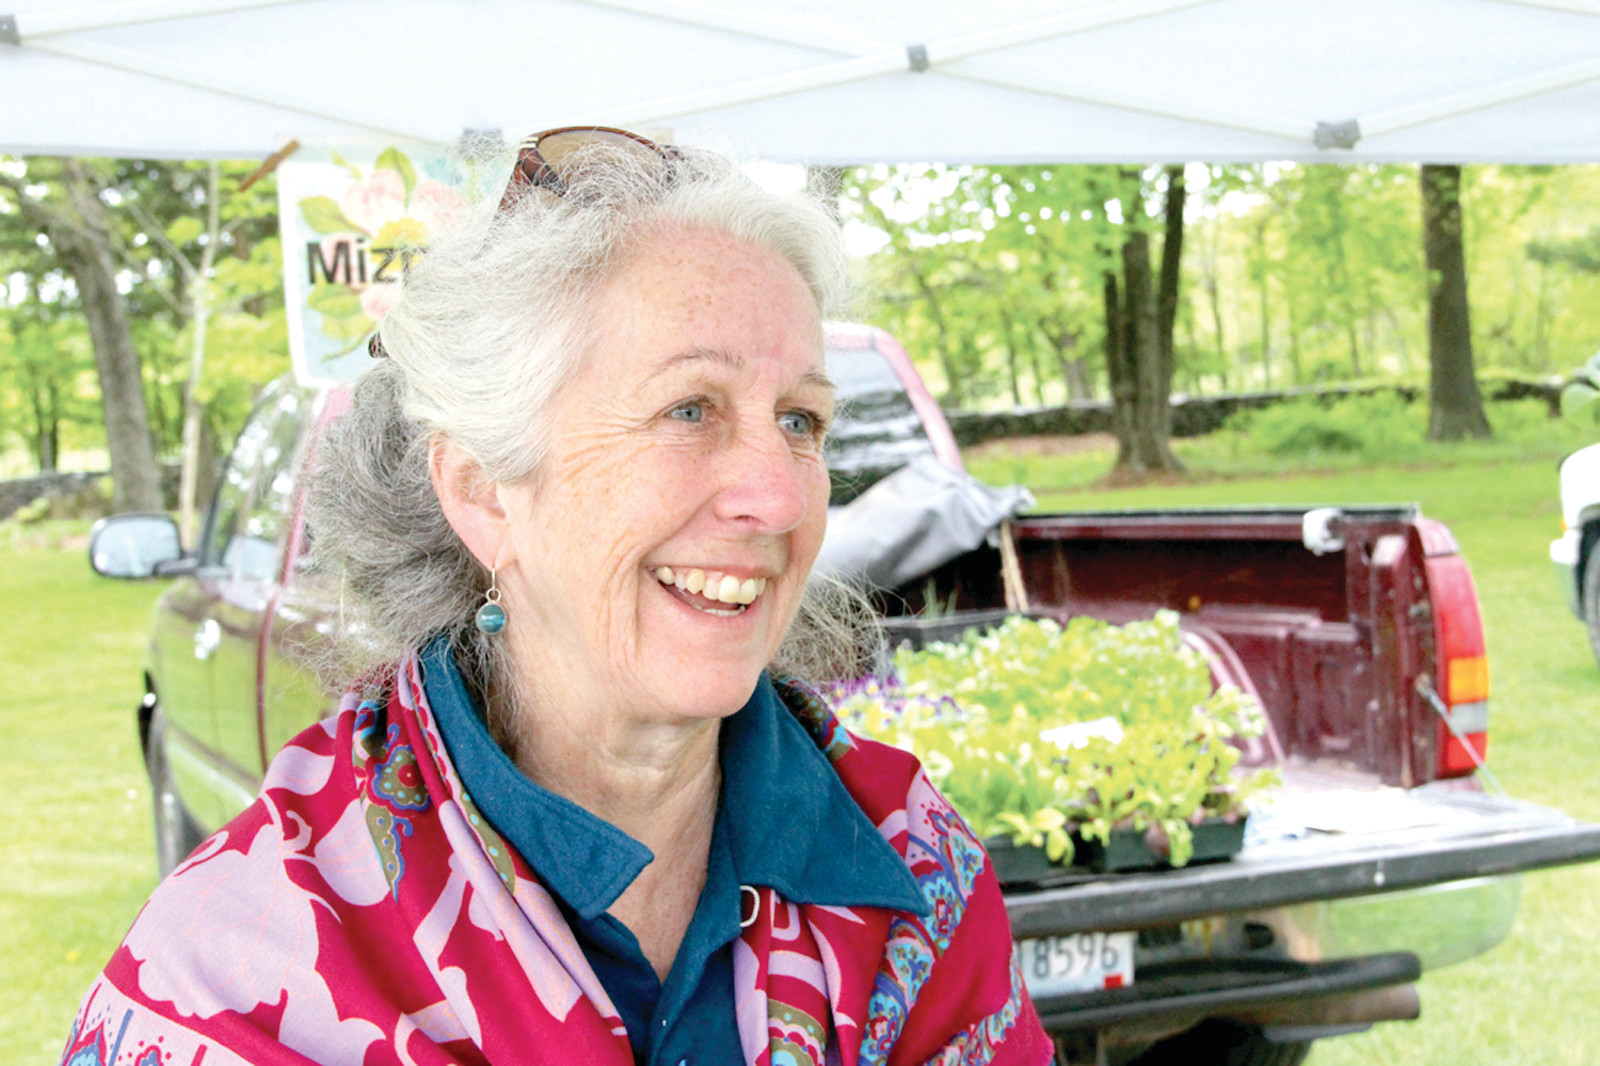 MARKET PROMOTER: Linda Blaney of Mizpah Farm in Exeter has a comparatively small farm  4 acres  but has been a long time advocate of the farmers market movement. She's a regular at the Goddard Park market that is open Fridays from 9 a.m. to 1 p.m. In addition to land produce, she sells Rhode Island grown kelp.